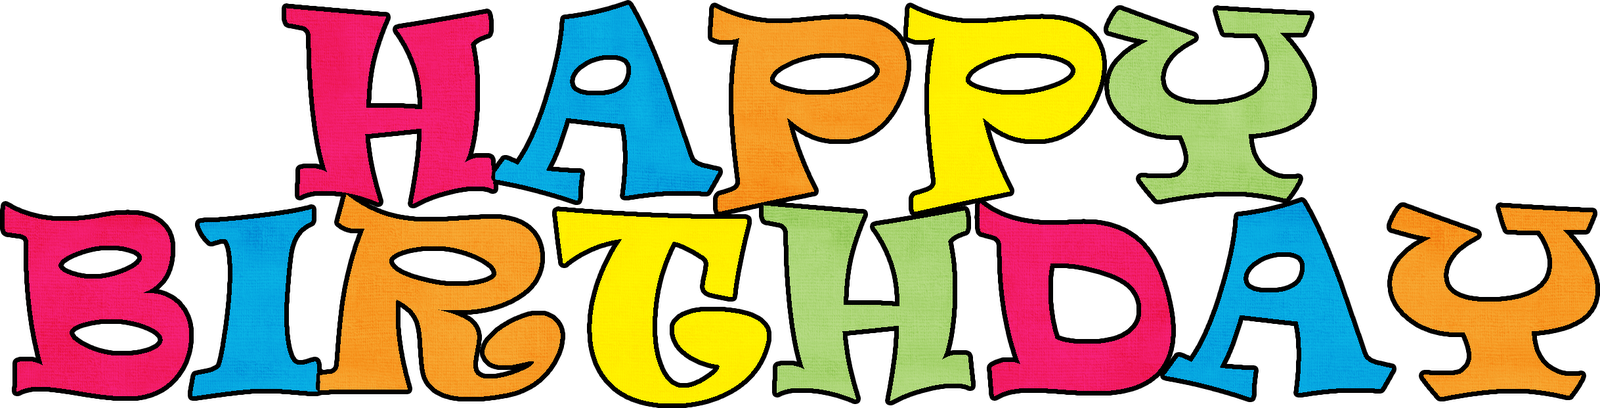 1600x408 Birthday Png Hd Animated Transparent Birthday Hd Animated.png